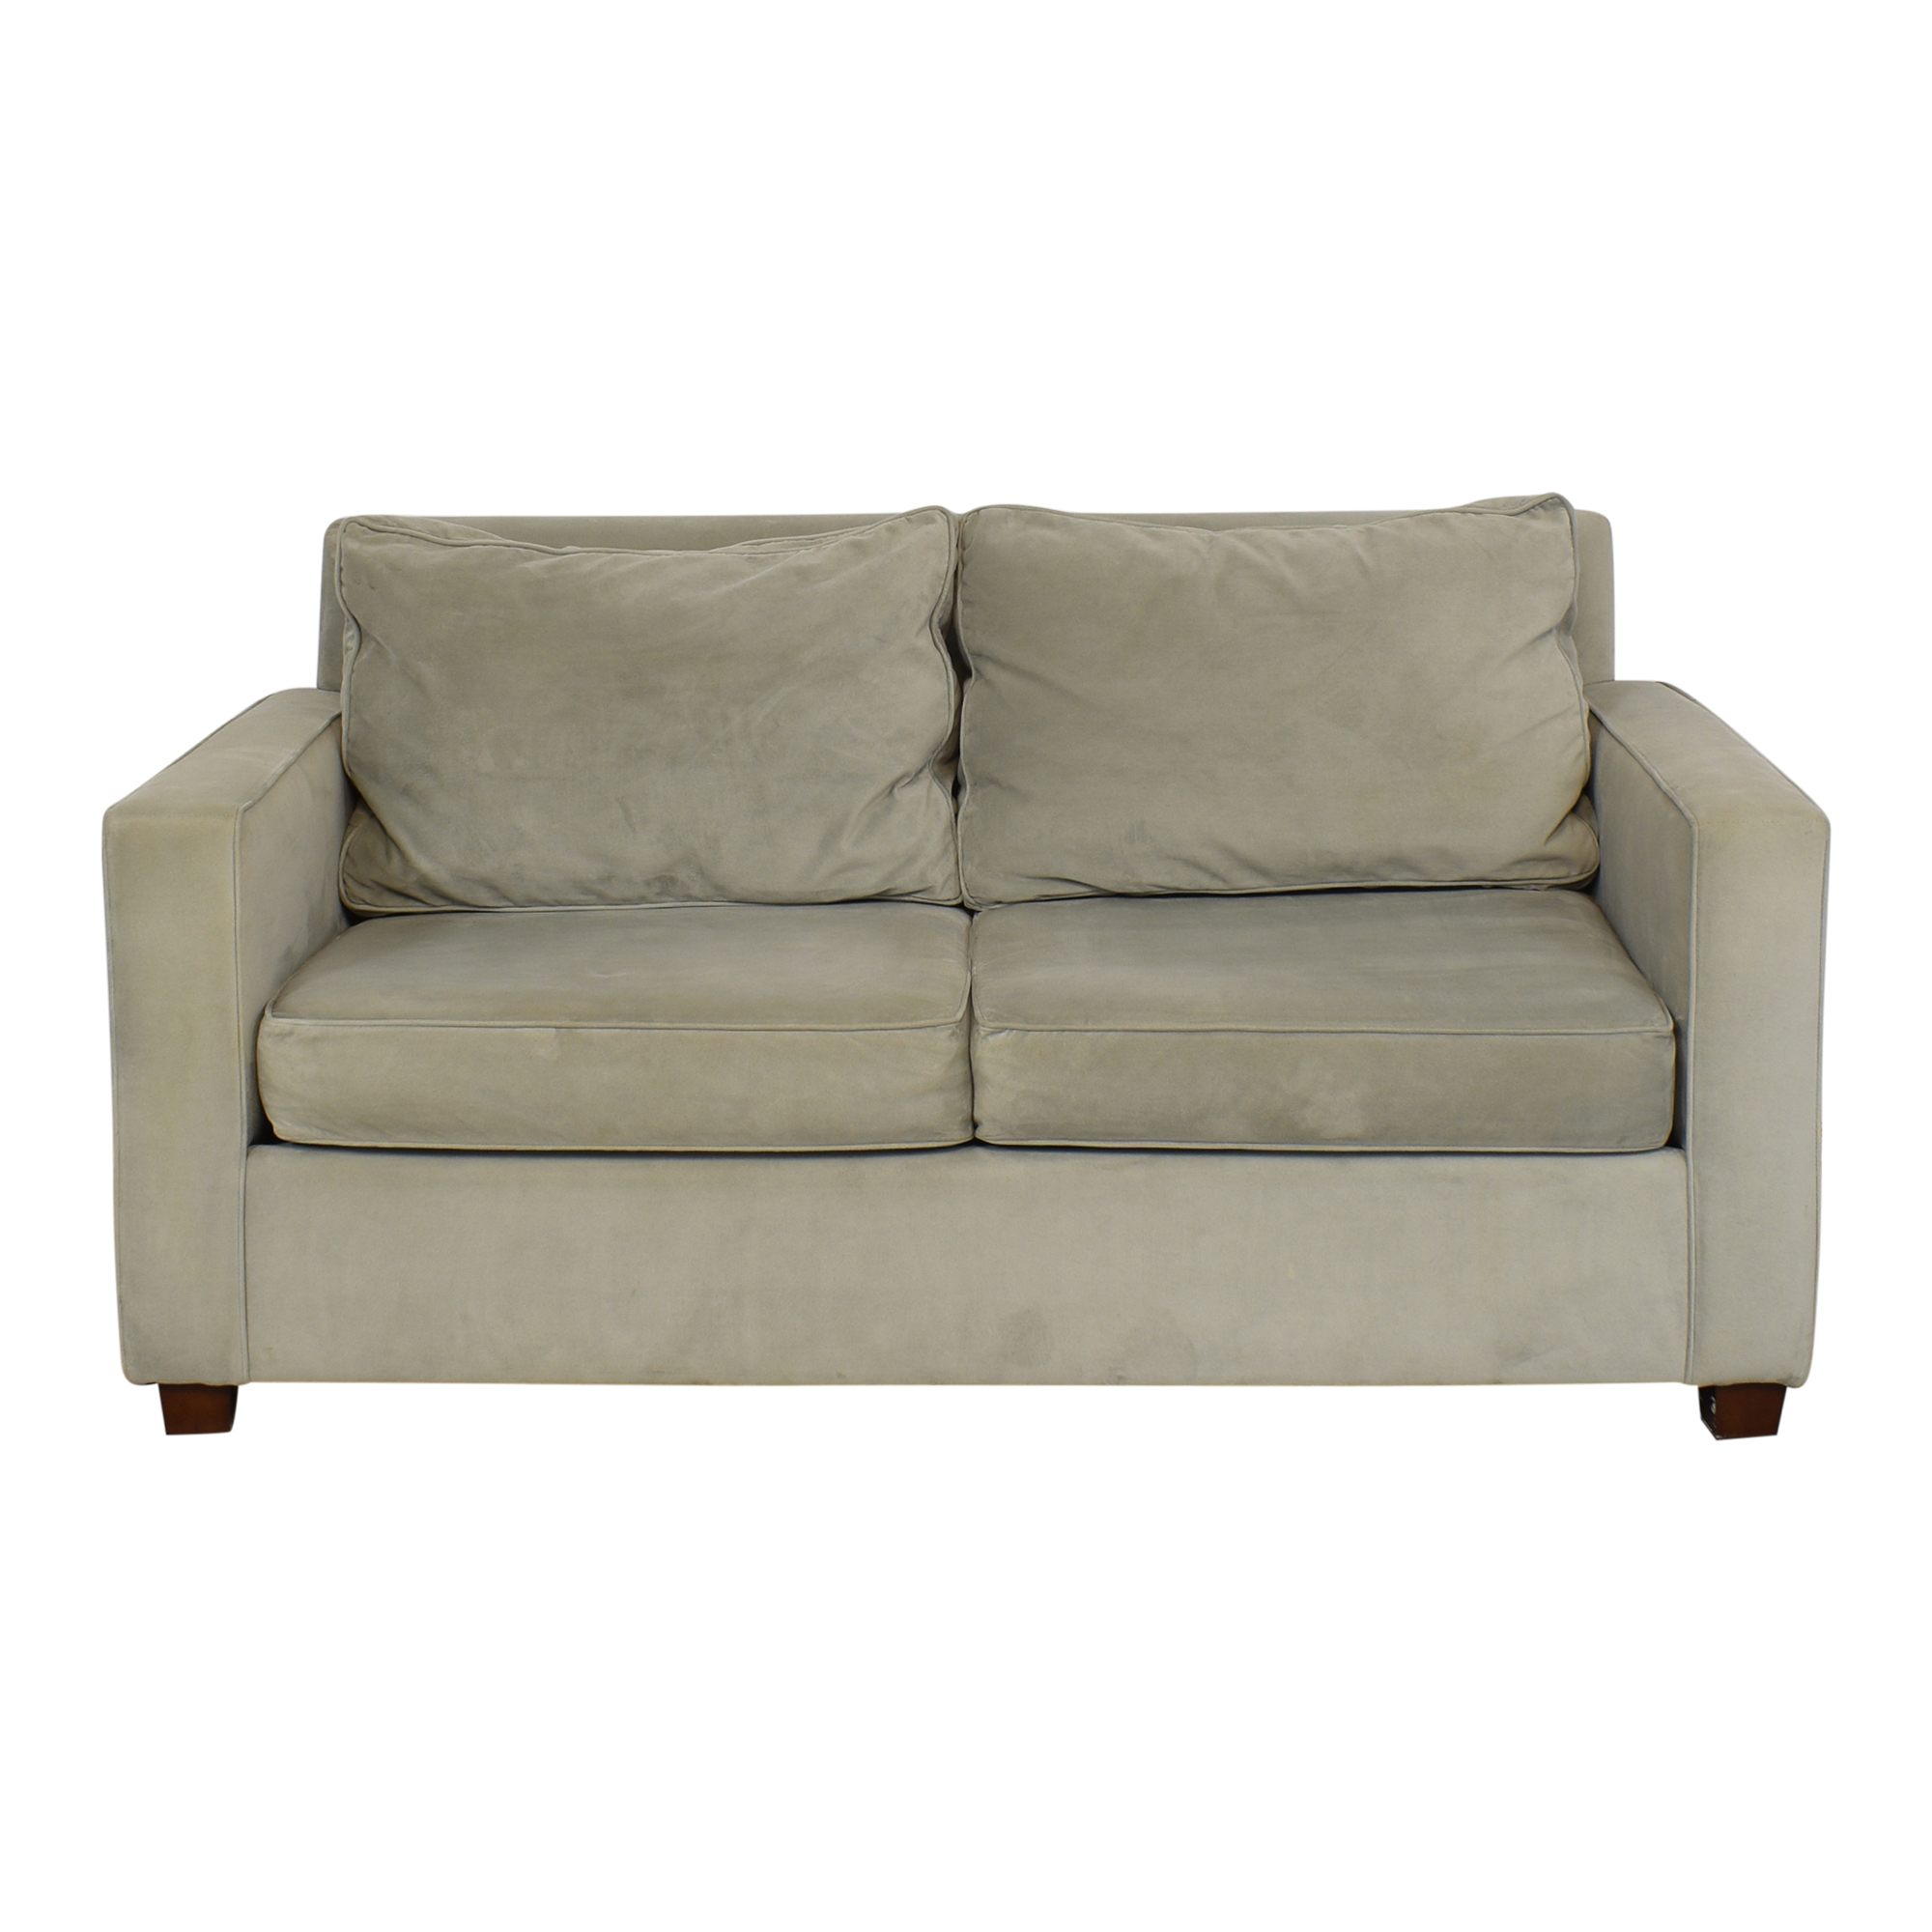 West Elm West Elm Loveseat ct